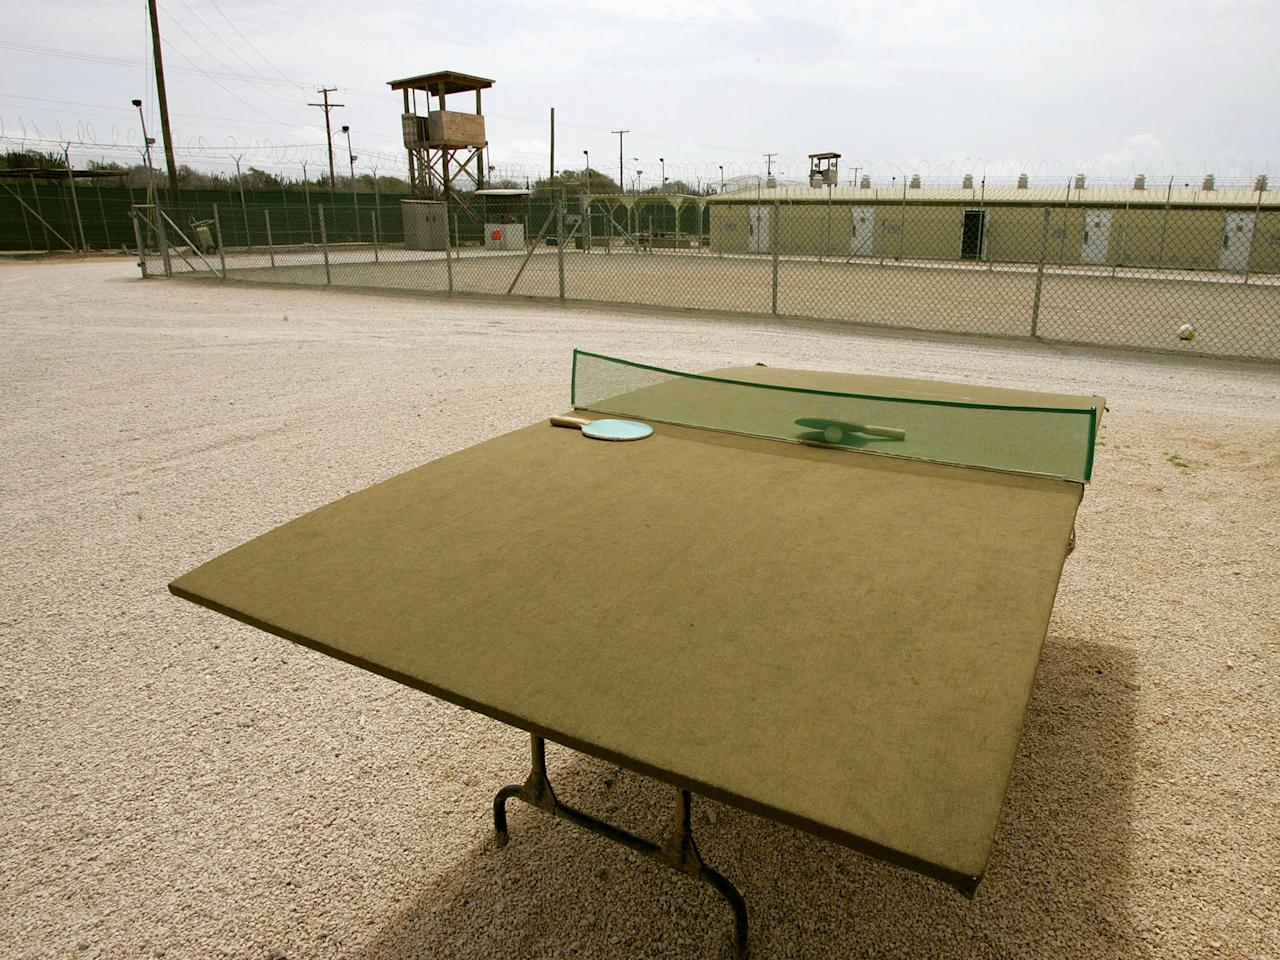 GUANTANAMO BAY, CUBA - AUGUST 23:  A ping pong table for detainees sits in the middlle of a court yard at Camp Delta at Guantanamo Naval Base August 23, 2004 in Guantanamo, Cuba. On August 24, preliminary hearings will begin for four suspected Al Qaeda associates charged by the U.S. with war crimes as they appear before a commission of five military officers.  (Photo by Mark Wilson/Getty Images)